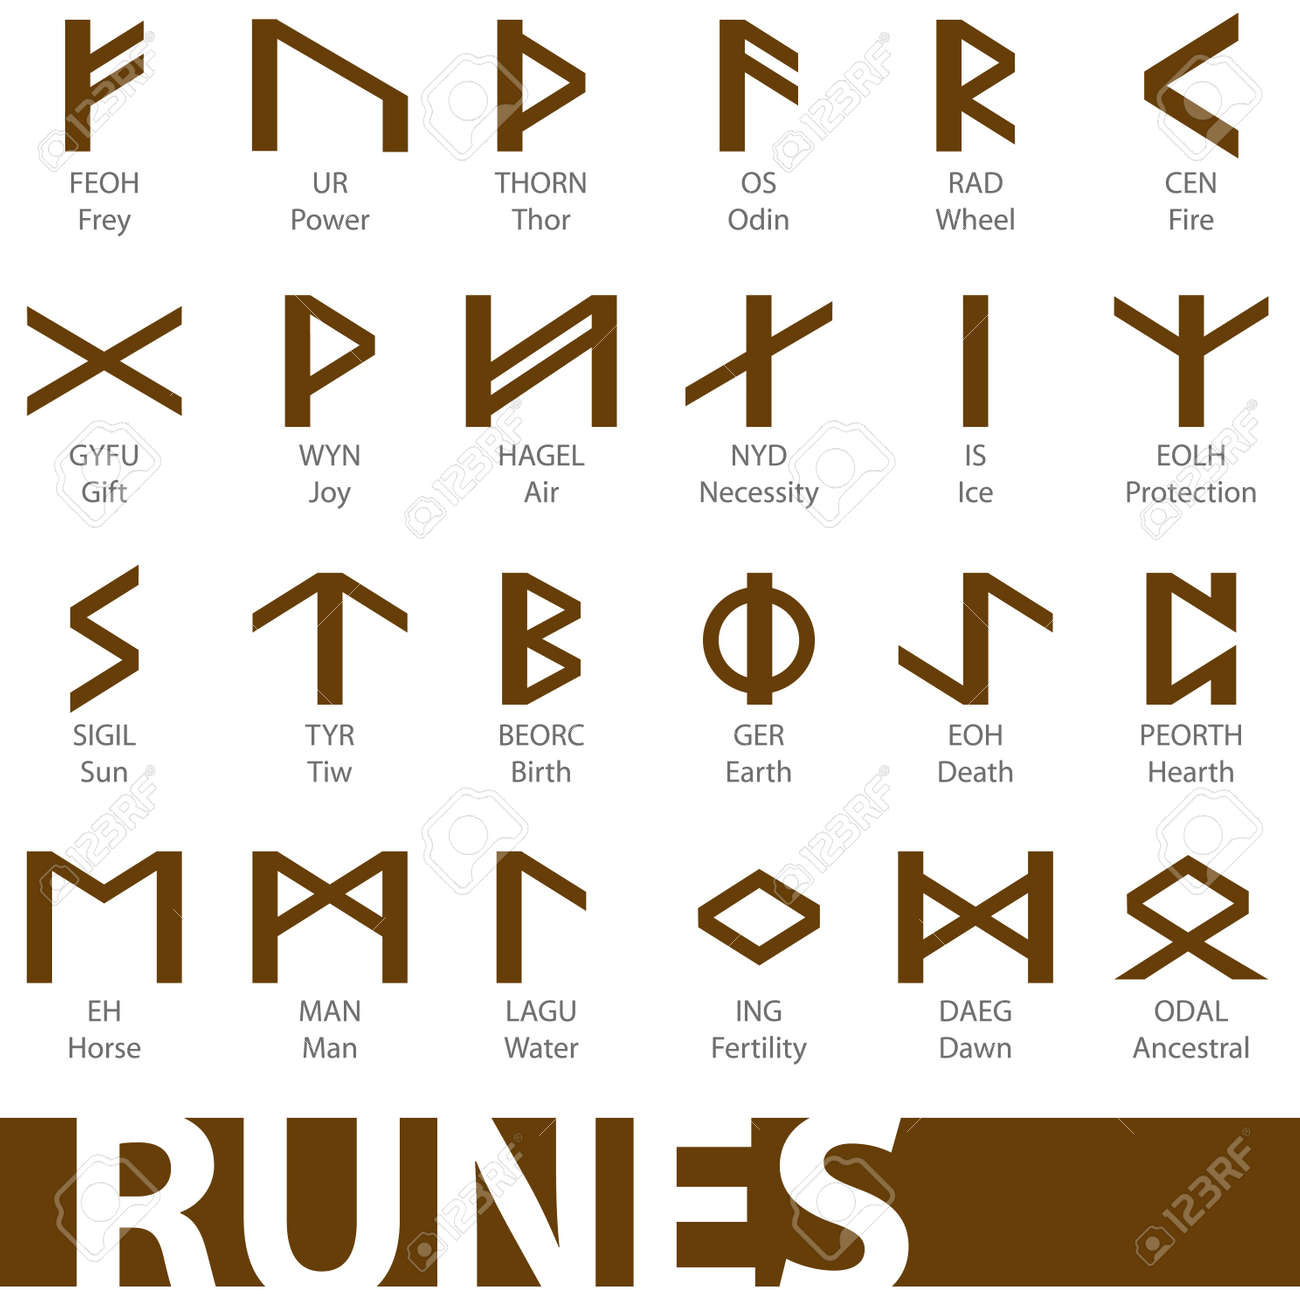 Set of runes vector illustrations icons symbols royalty free set of runes vector illustrations icons symbols stock vector 6761832 biocorpaavc Images